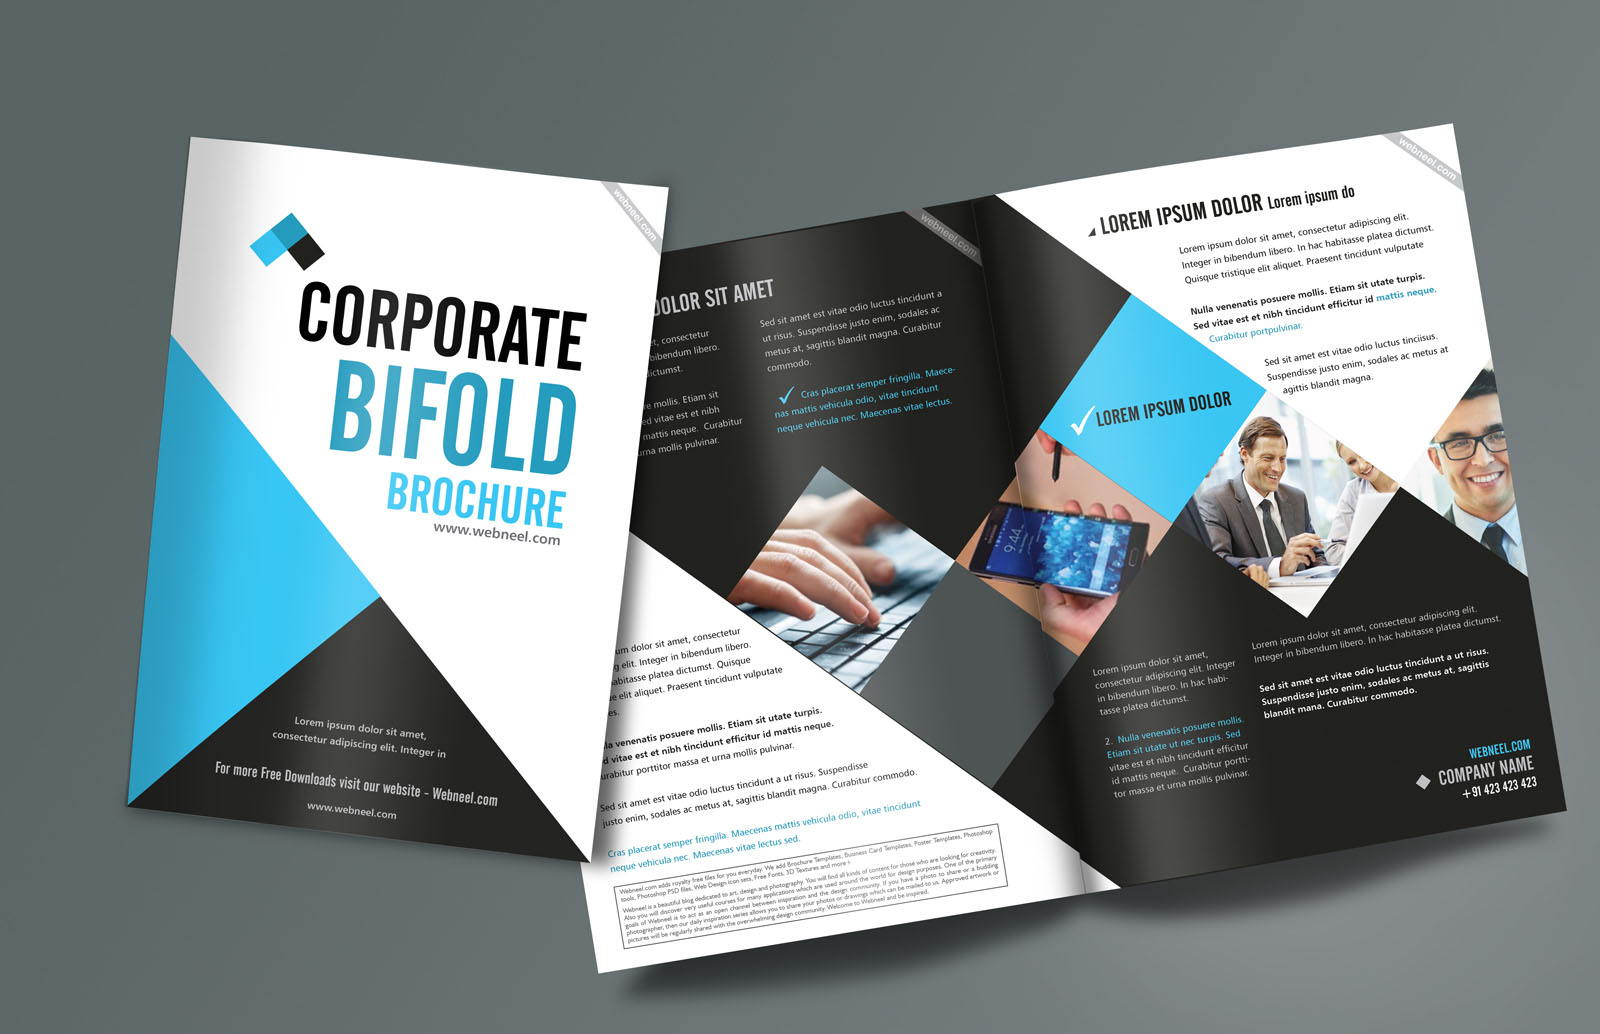 Corporate BiFold Brochure Design Templates Freedownload Printing - Free brochure design templates